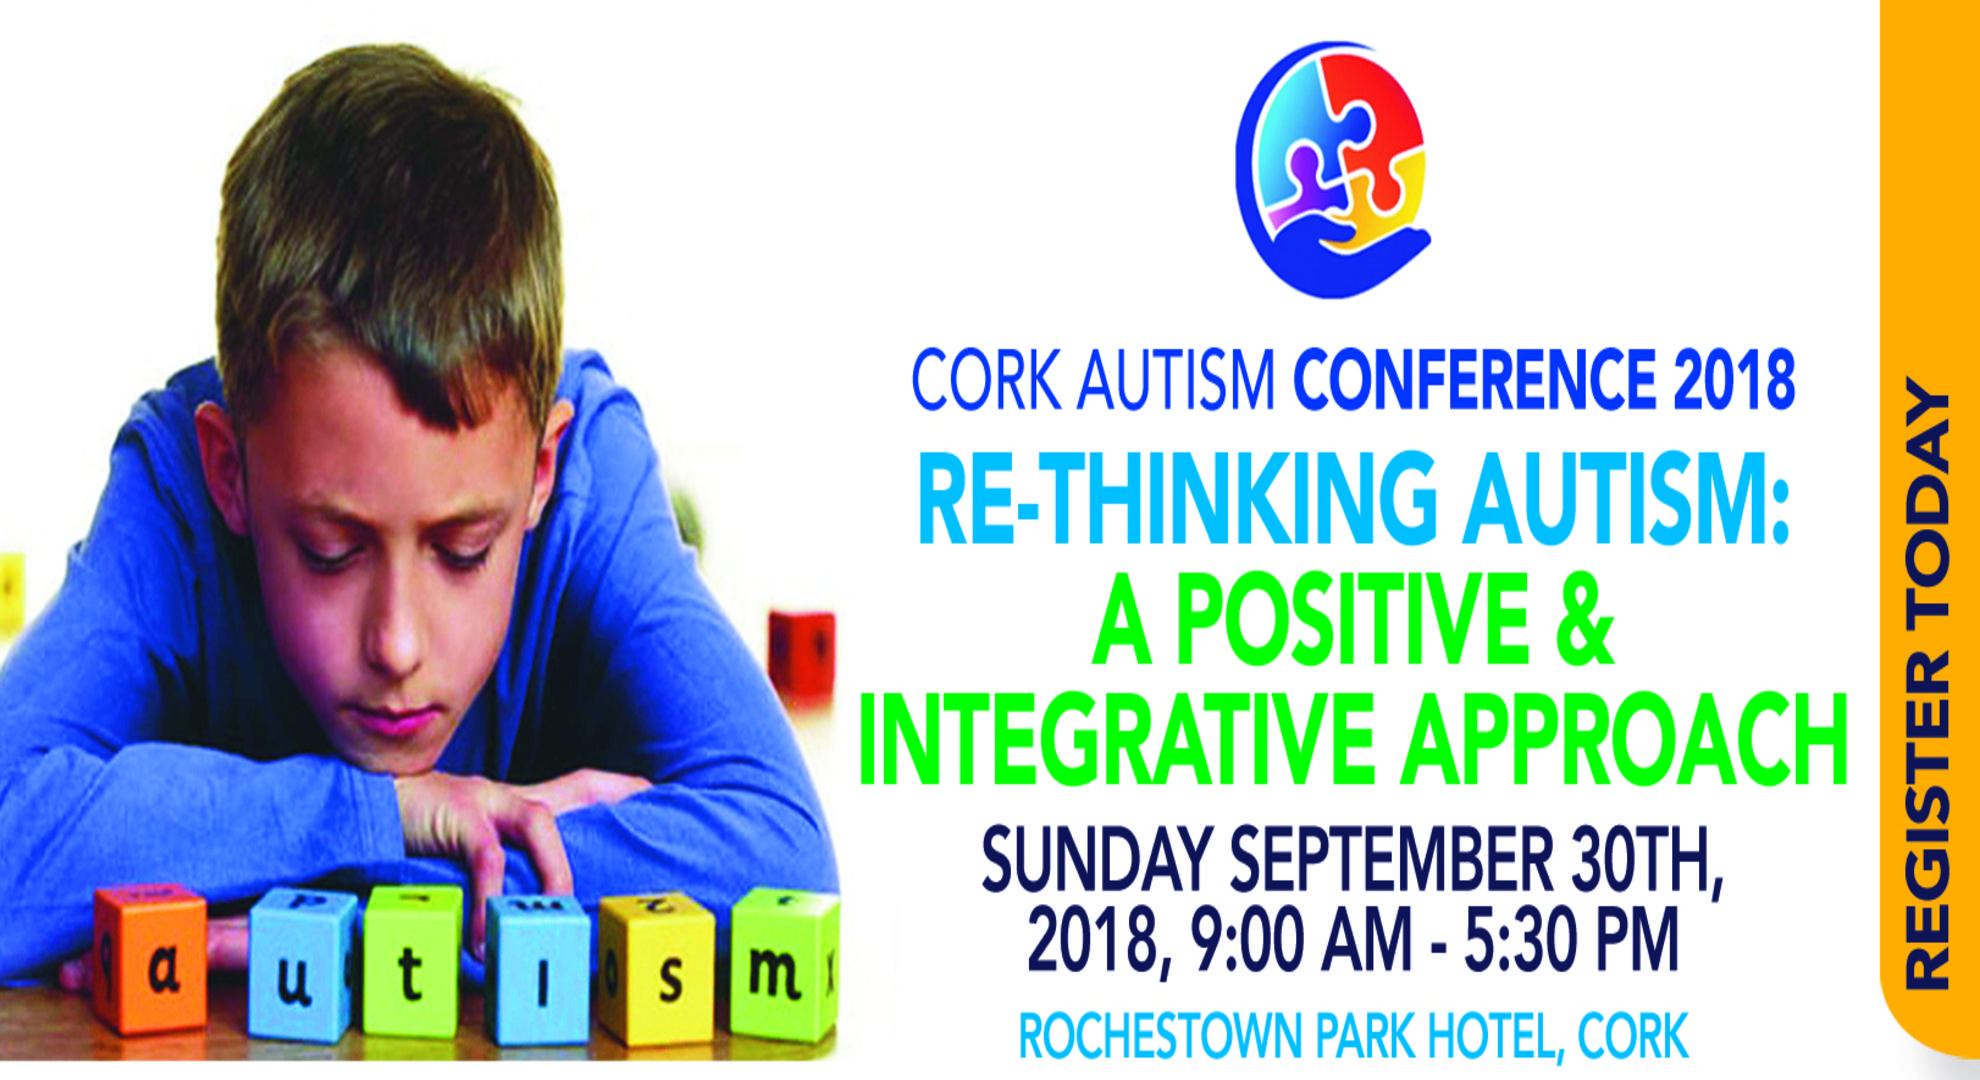 CORK AUTISM CONFERENCE 2018 ~ Re-Thinking Autism: A Positive and Integrative Approach